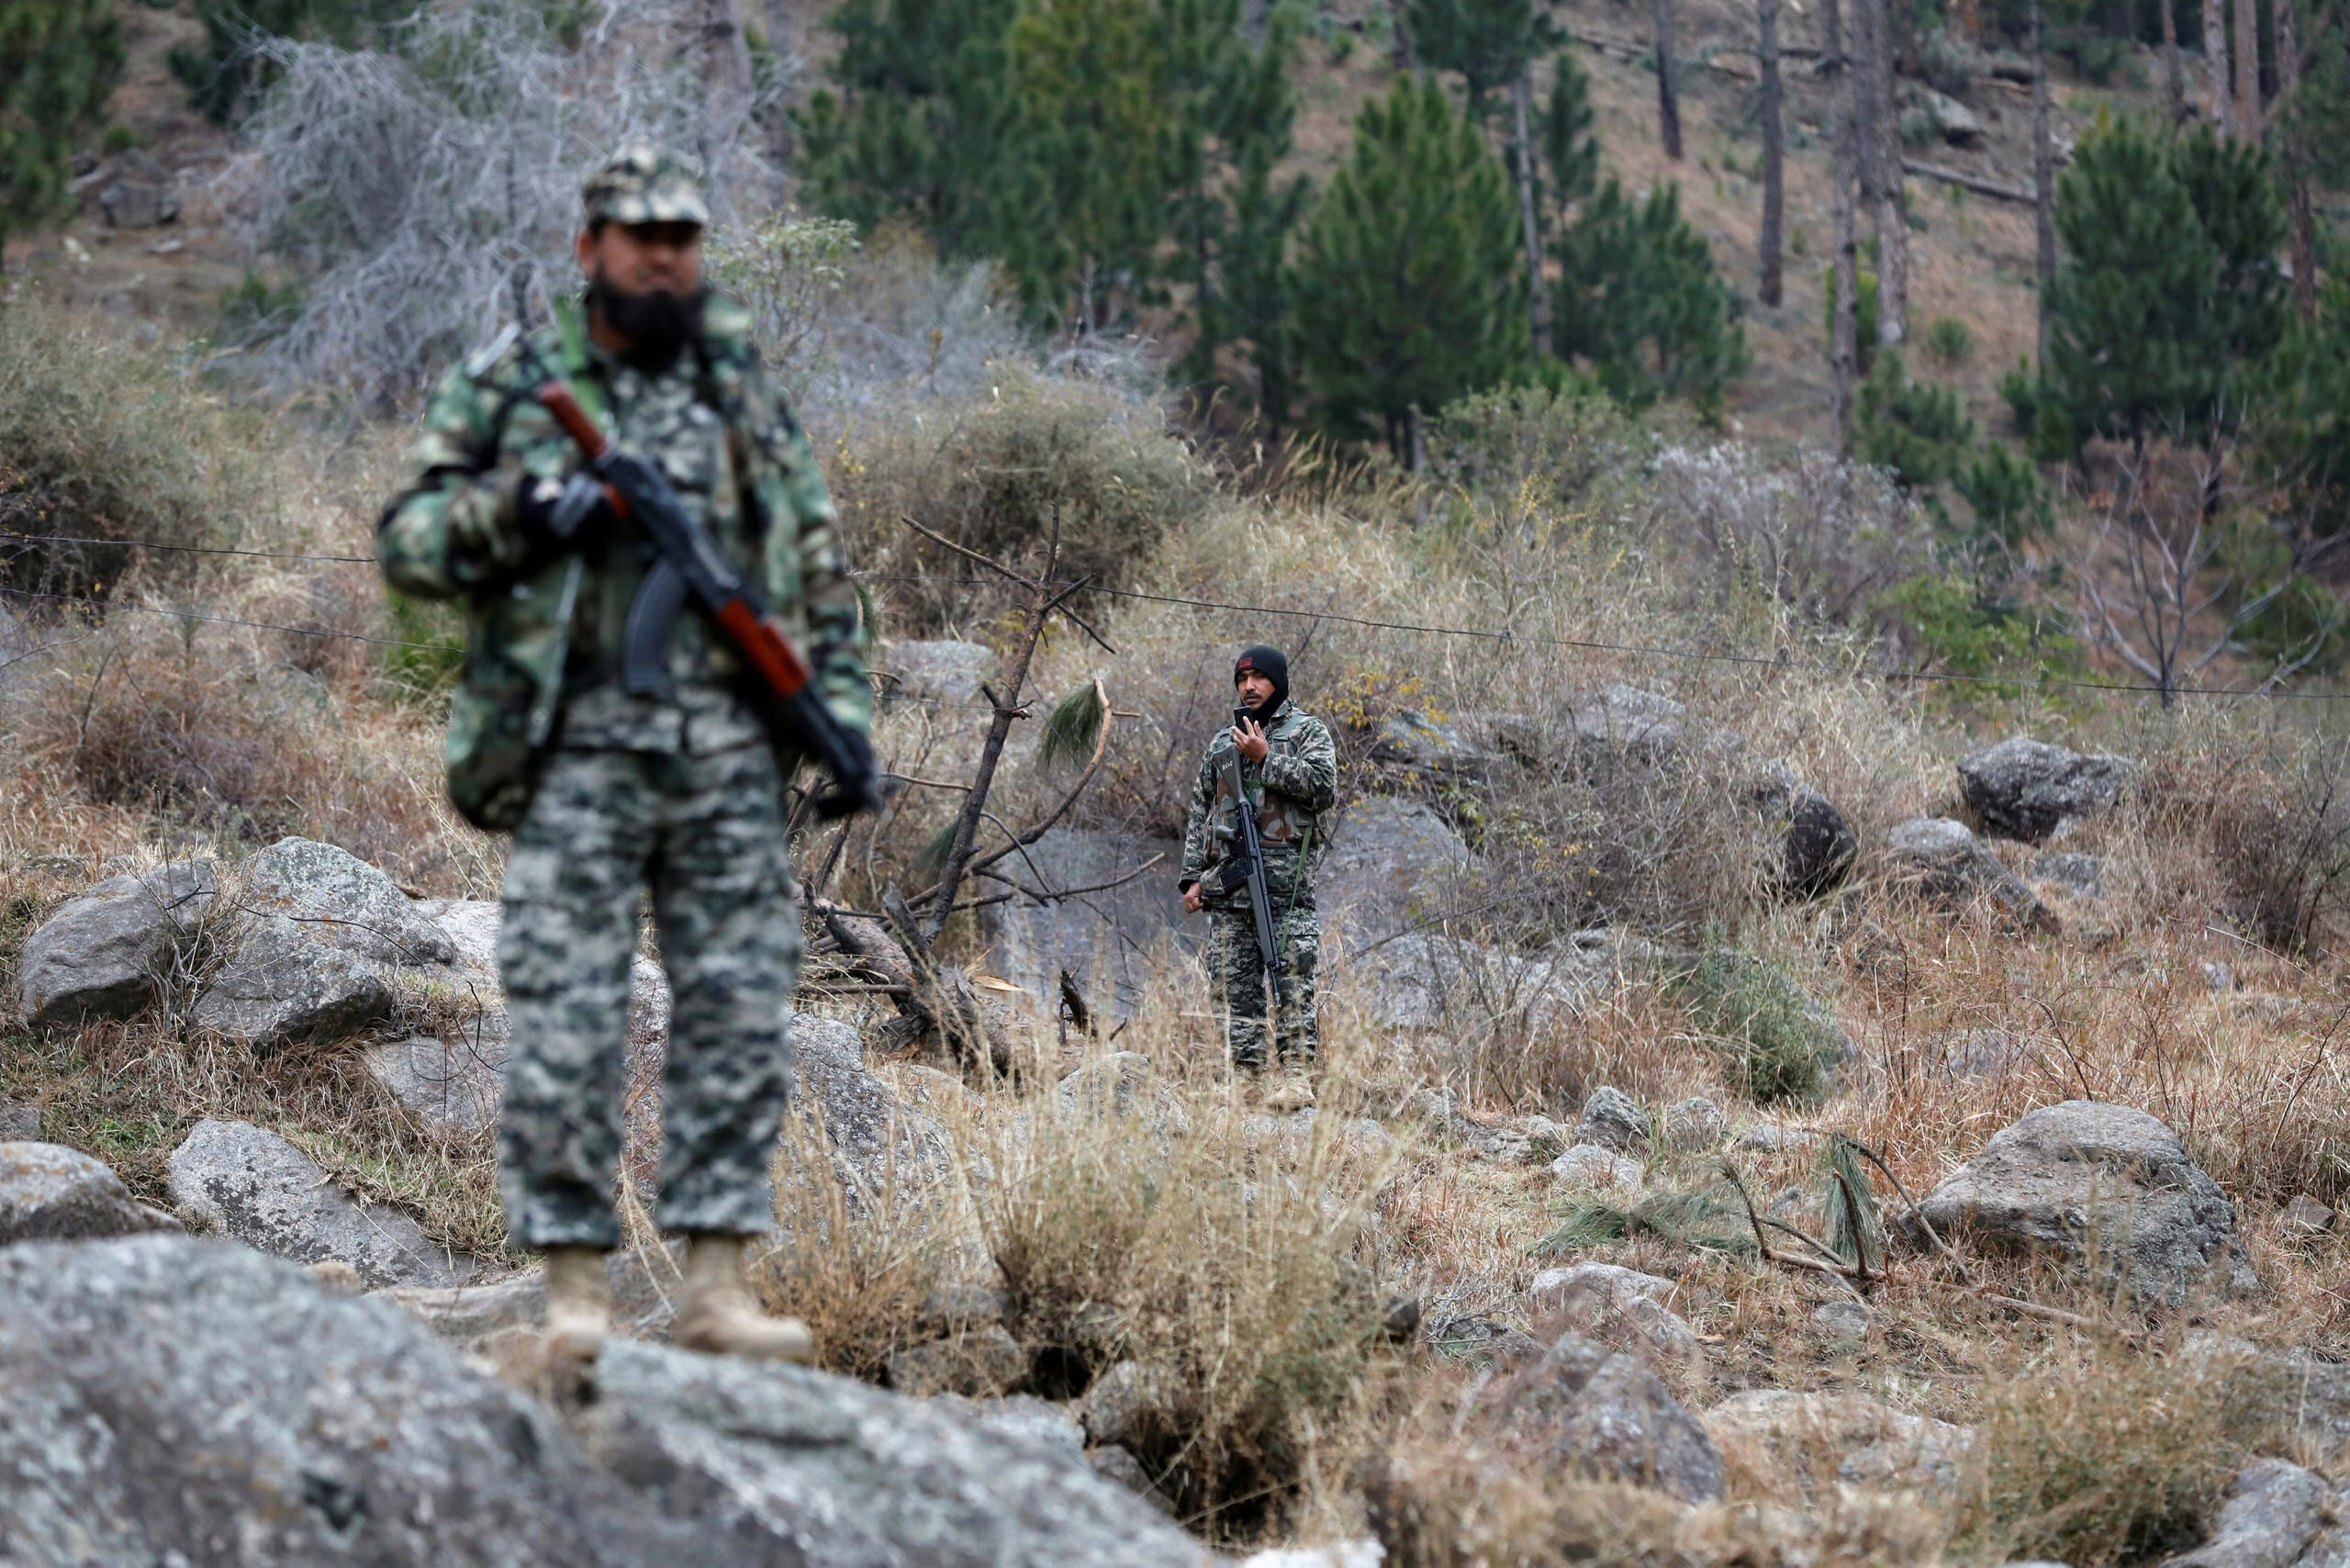 Pakistan's army soldiers guard the area, after Indian military aircrafts struck on February 26, according to Pakistani officials, in Jaba village, near Balakot, Pakistan, on March 7, 2019. (Reuters)